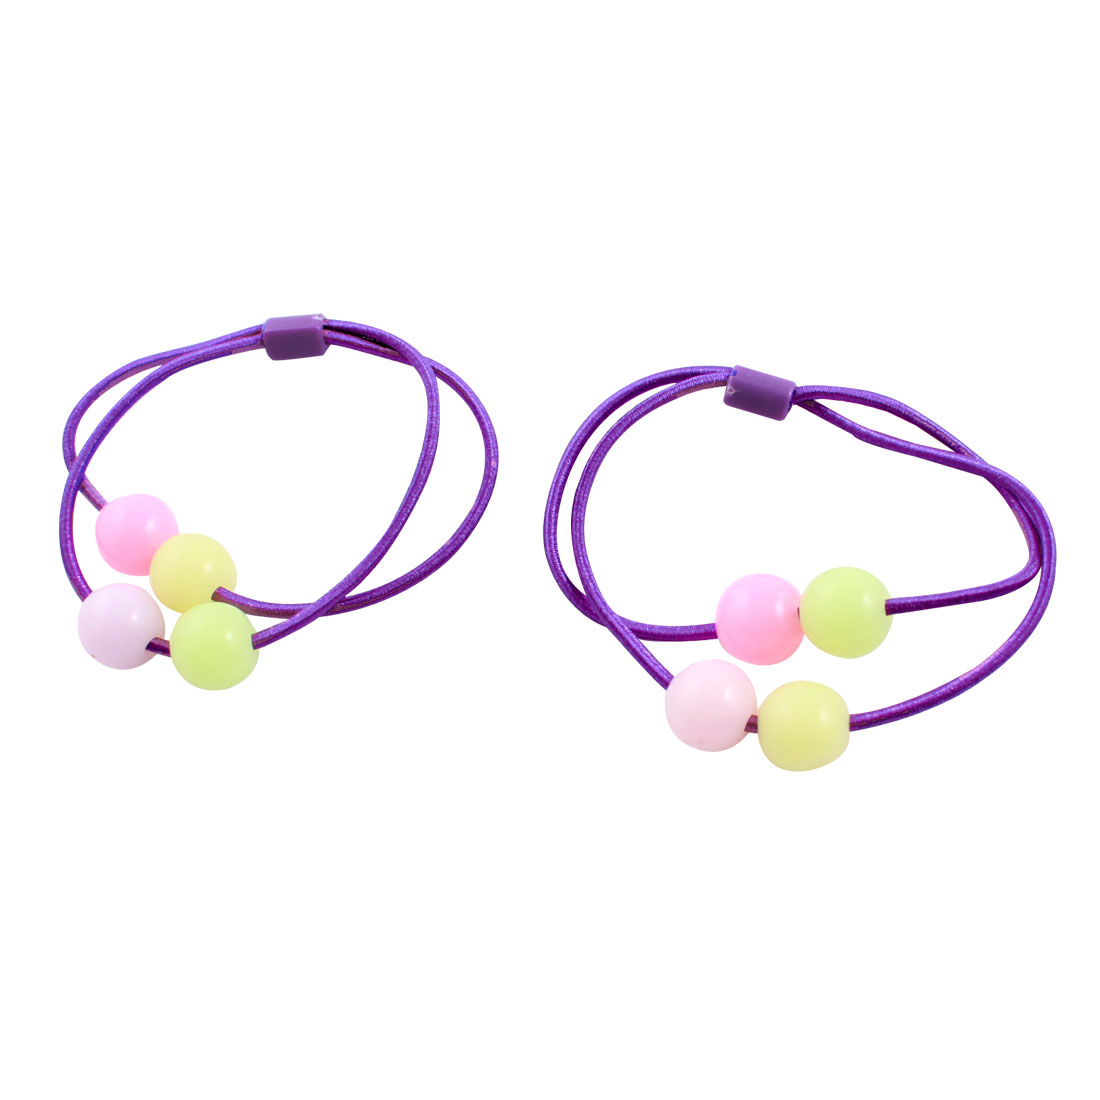 Multicolor Round Plastic Beads Accent Purple Stretchy Band Hair Tie Ponytail Holder 2 Pcs